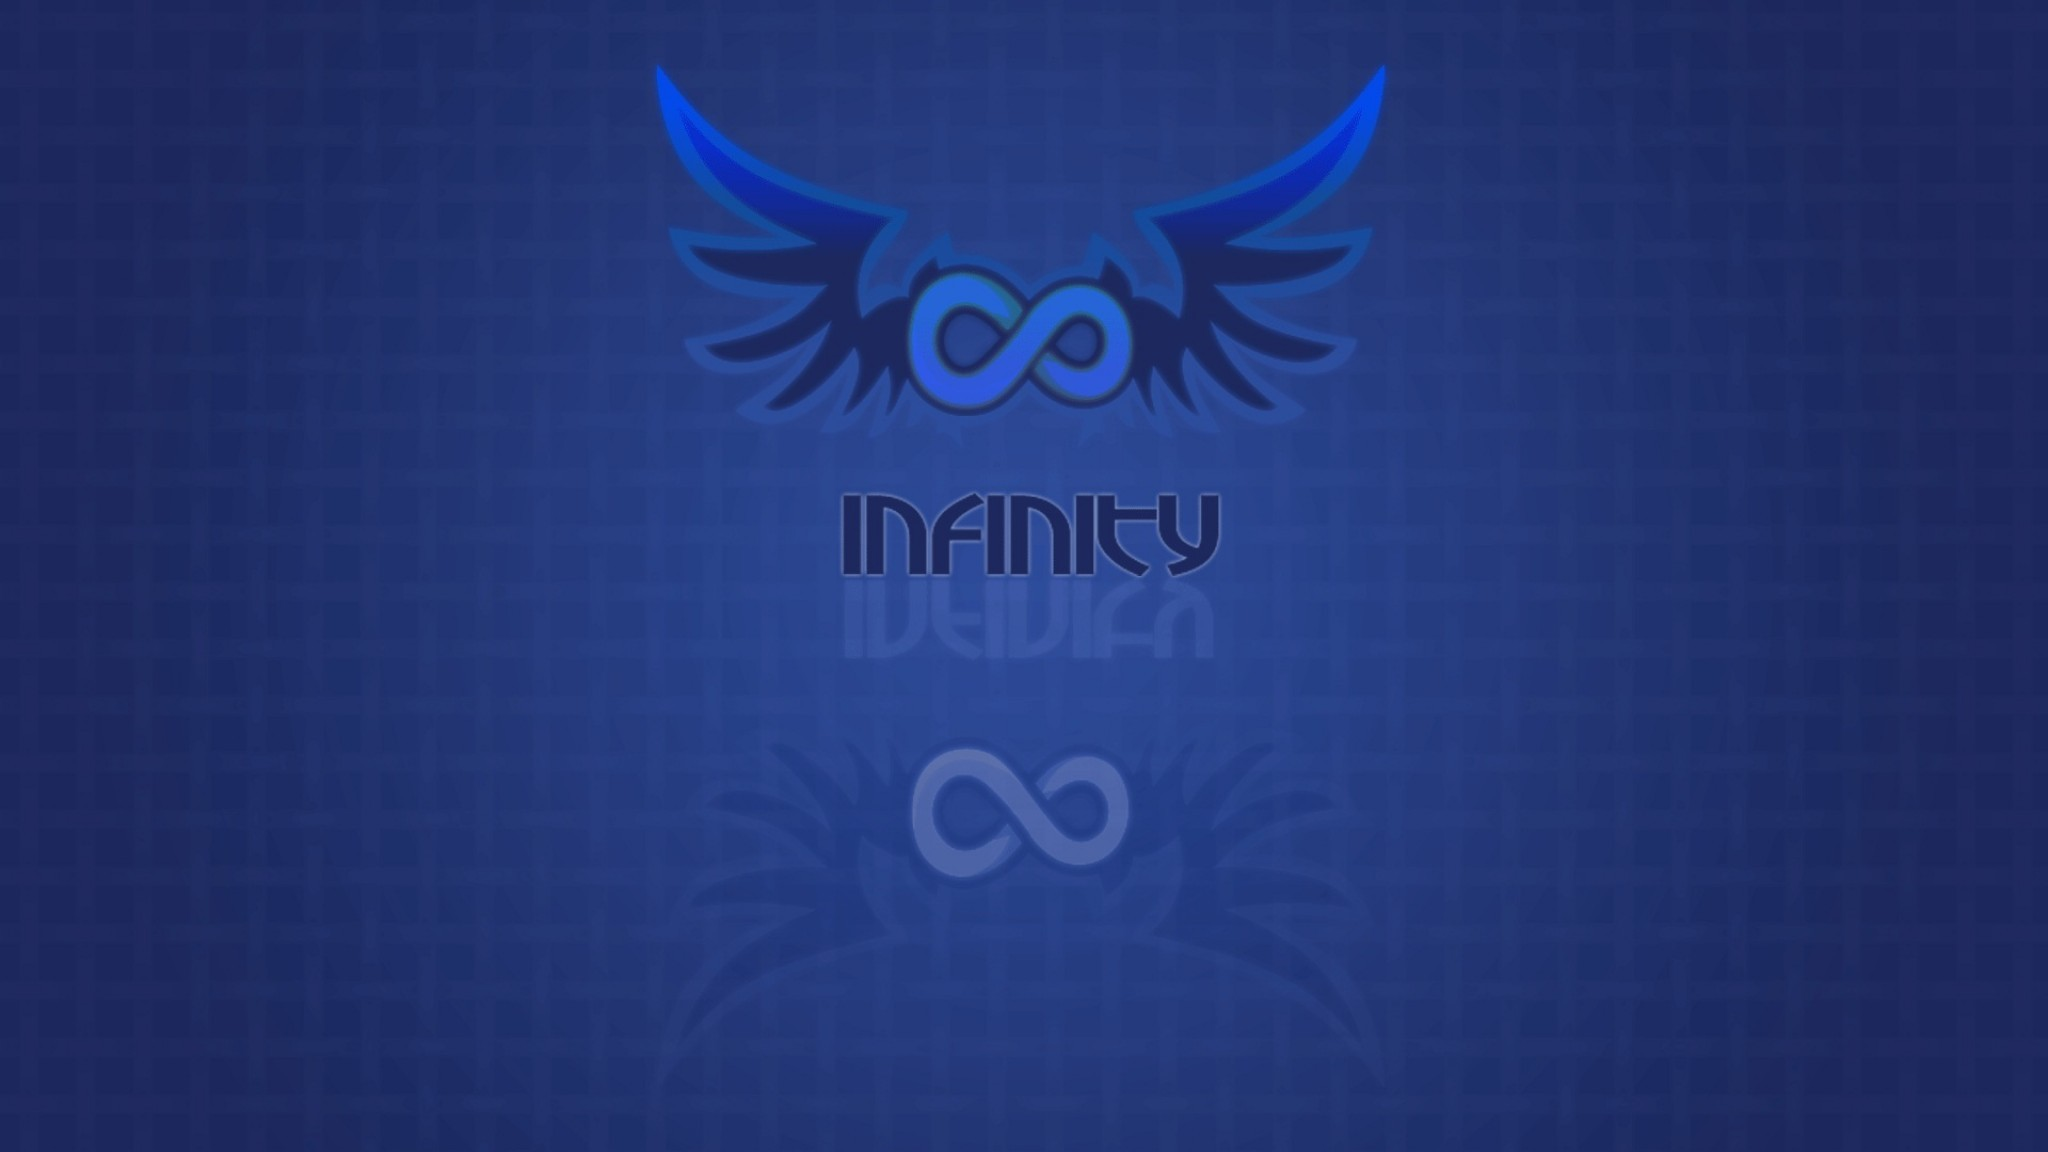 Infinity Symbol Wallpapers 73 Images